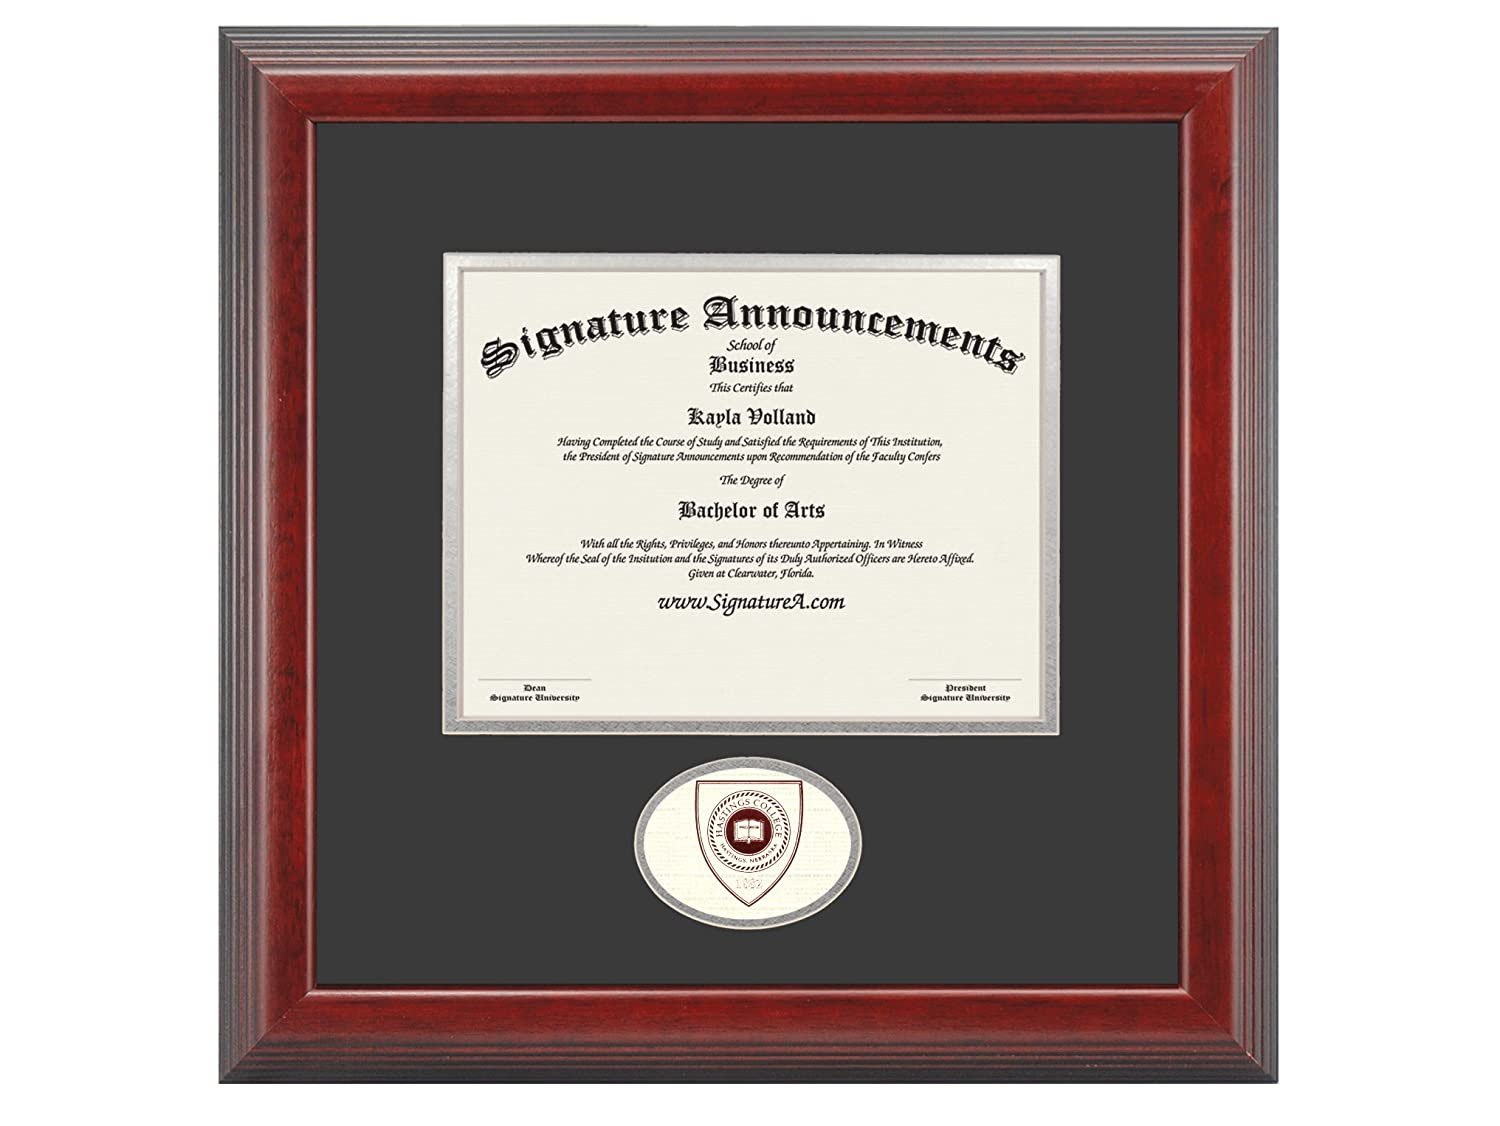 Sculpted Foil Seal Graduation Diploma Frame 16 x 16 Cherry Signature Announcements Hastings-College Undergraduate